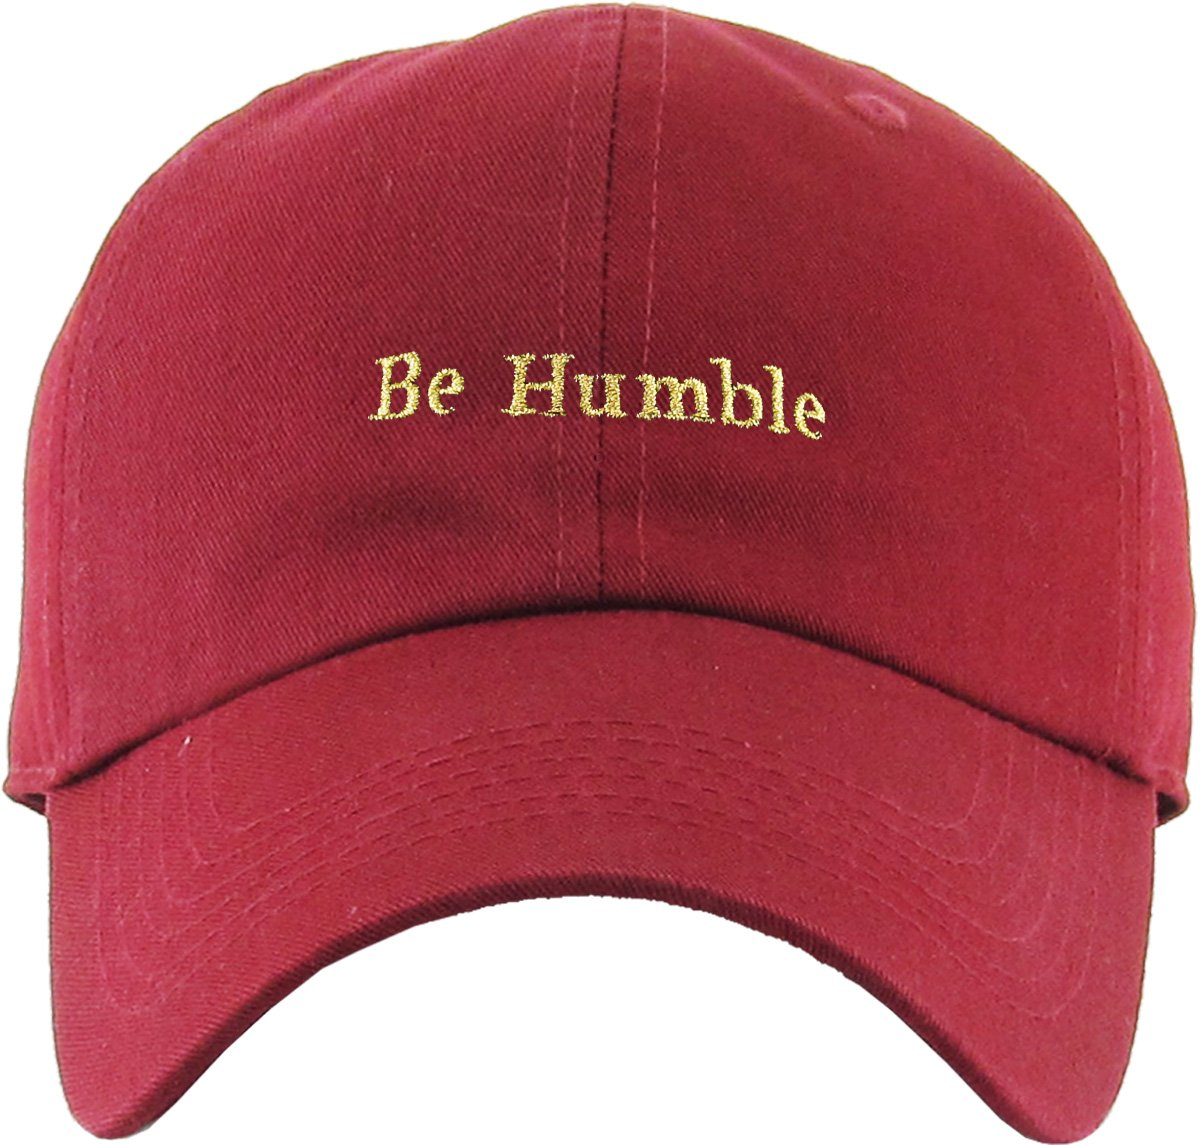 KBETHOS Stay Woke SELF Made BE Humble Slay TRAPSTART Henny and More Fashion Dad  Hat Baseball 79b4c6ae8320